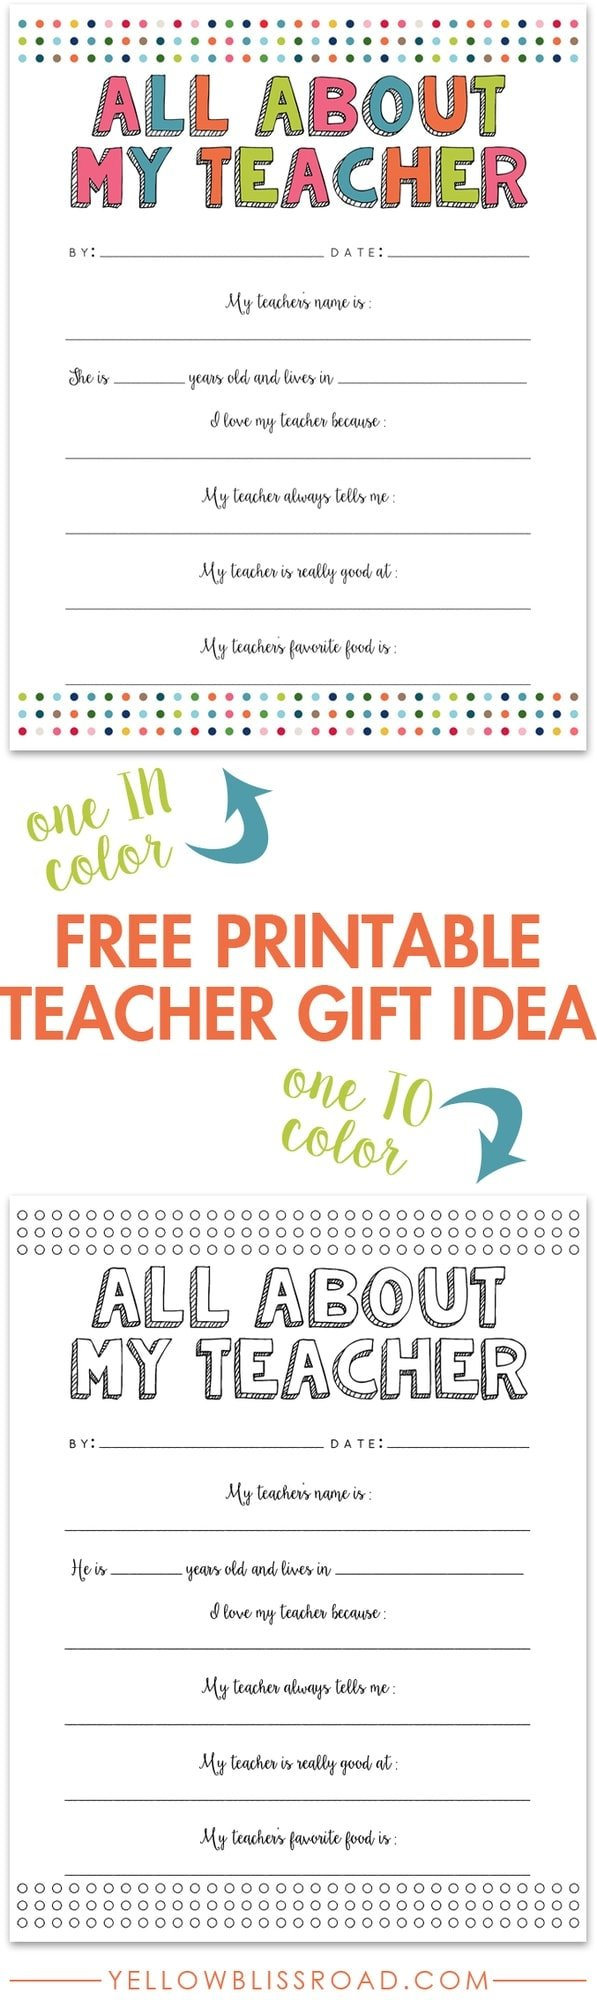 photo regarding All About My Teacher Free Printable named All More than My Instructor No cost Printable - Yellow Bliss Highway